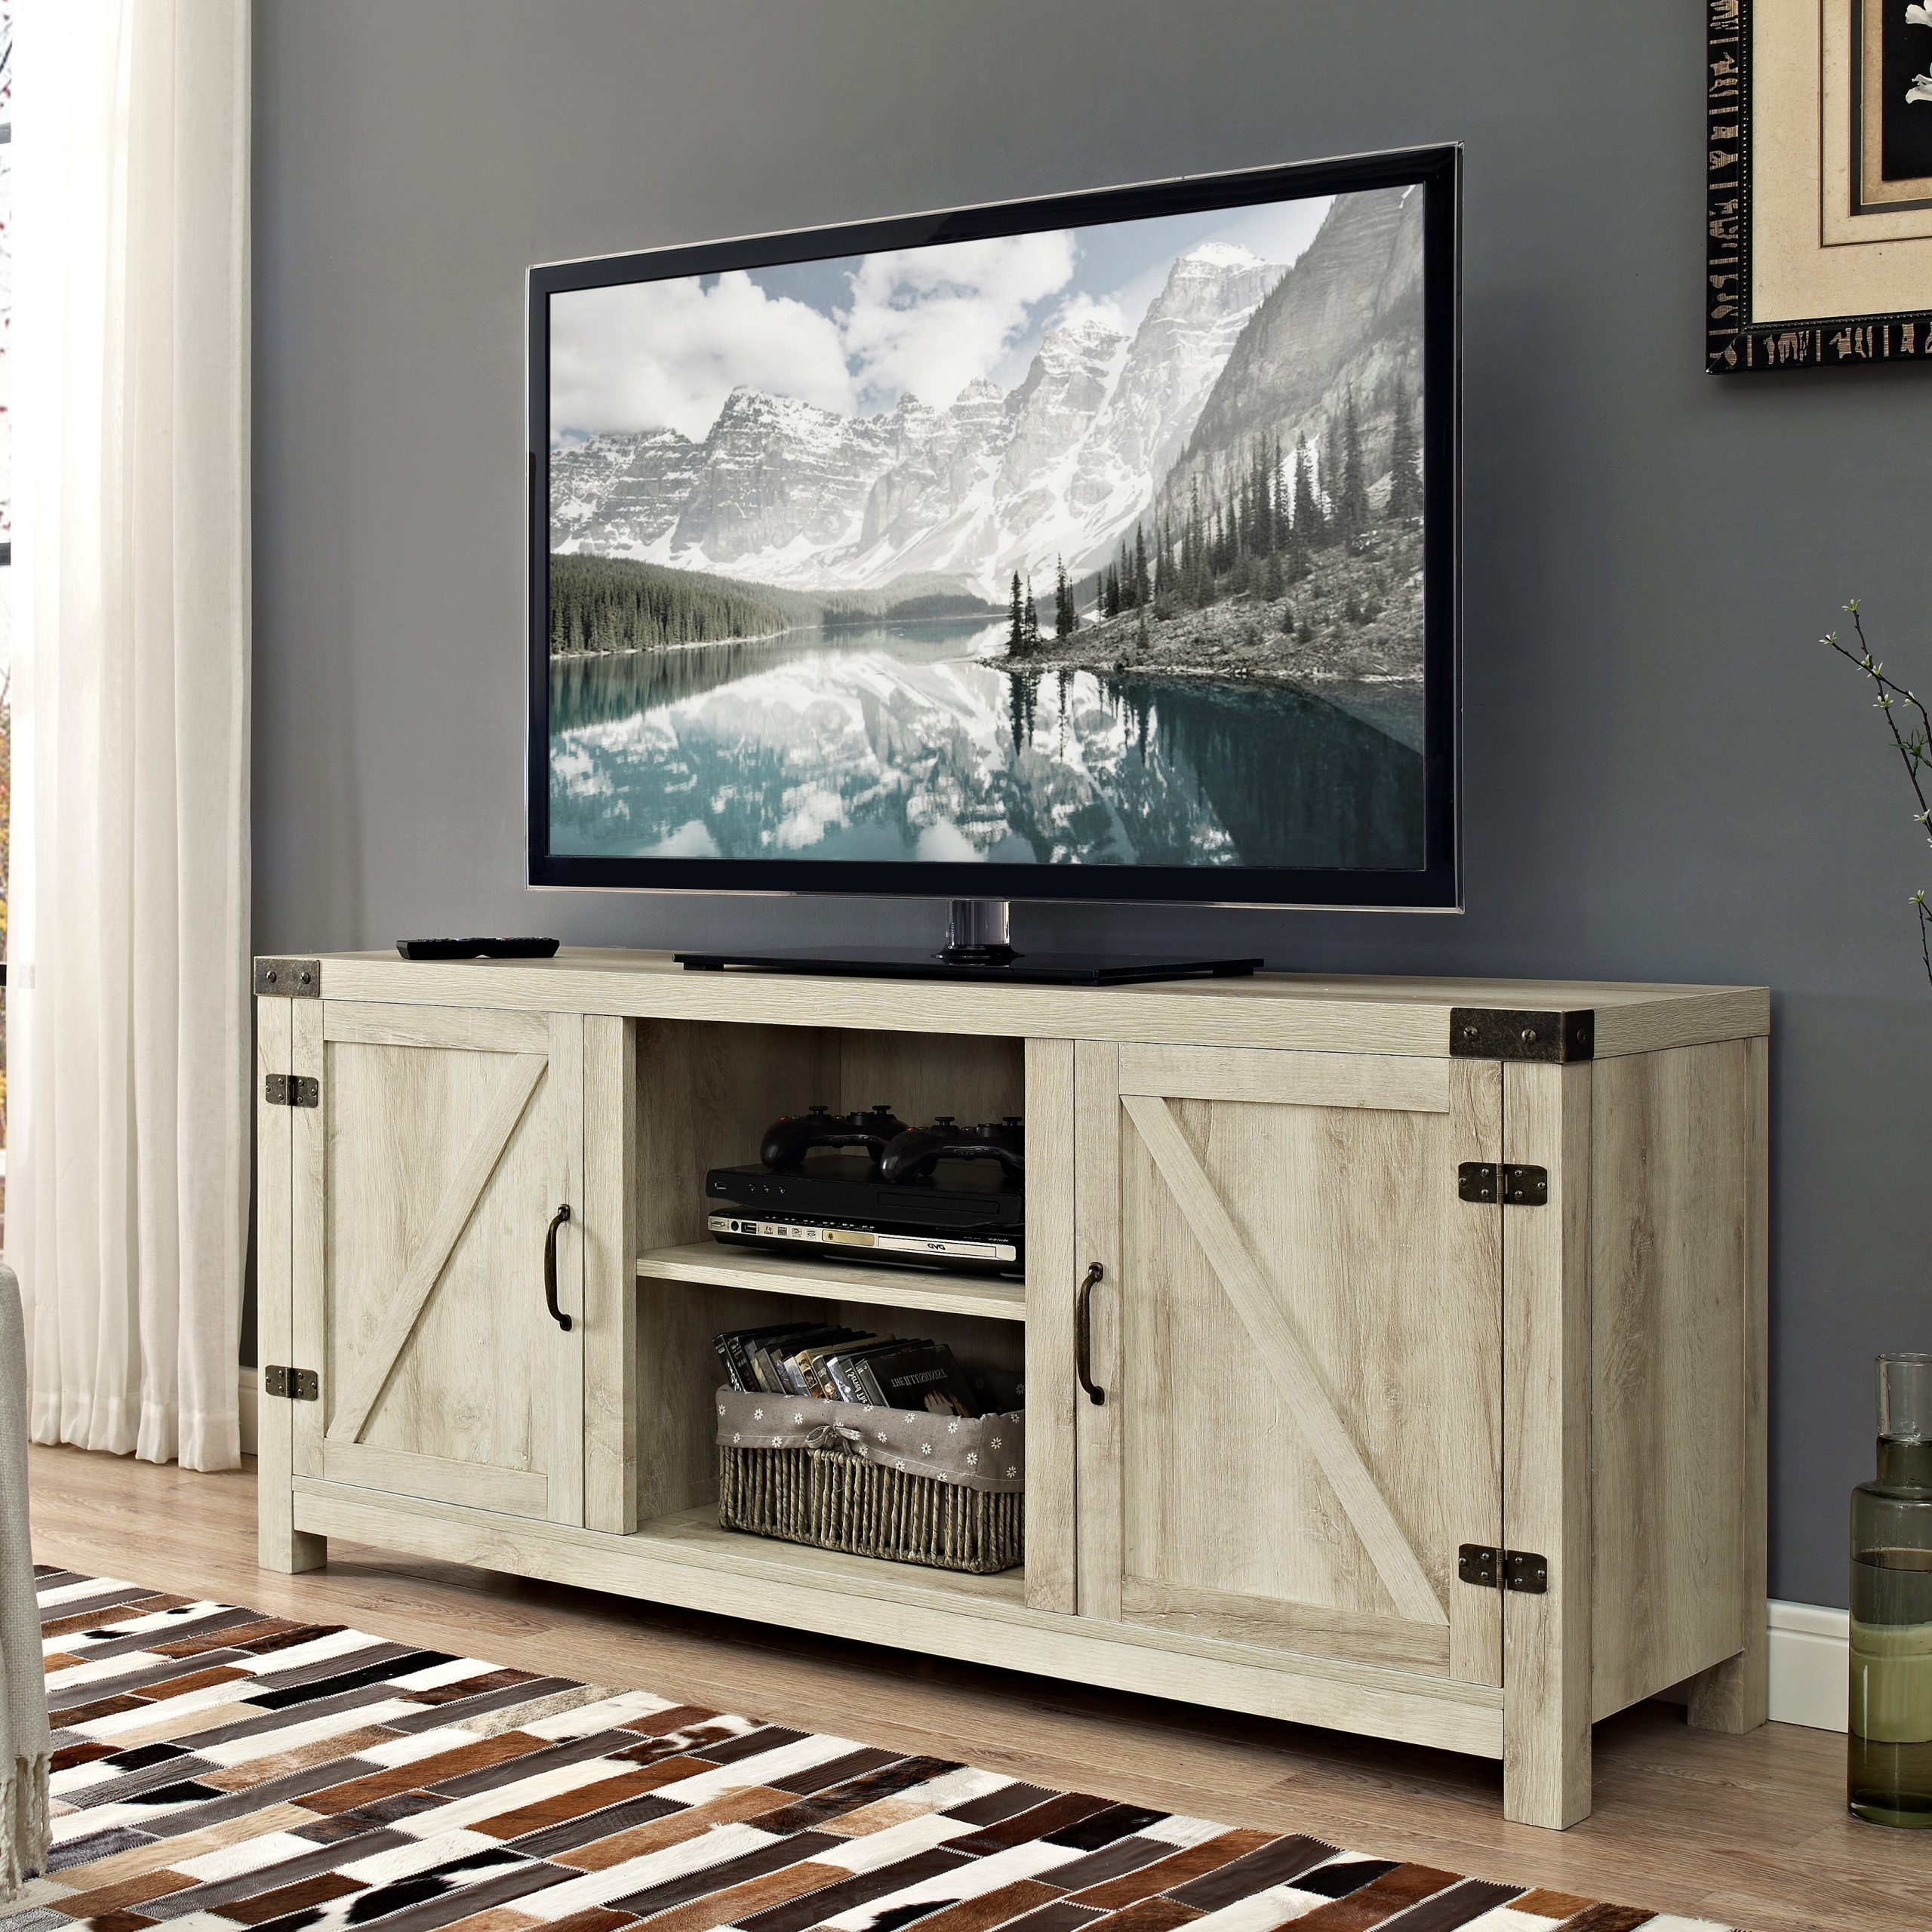 """Shilo Tv Stands For Tvs Up To 65"""" Throughout Newest 65 Inch Tv Stand Rustic Low Profile Media Console Wood (View 18 of 20)"""